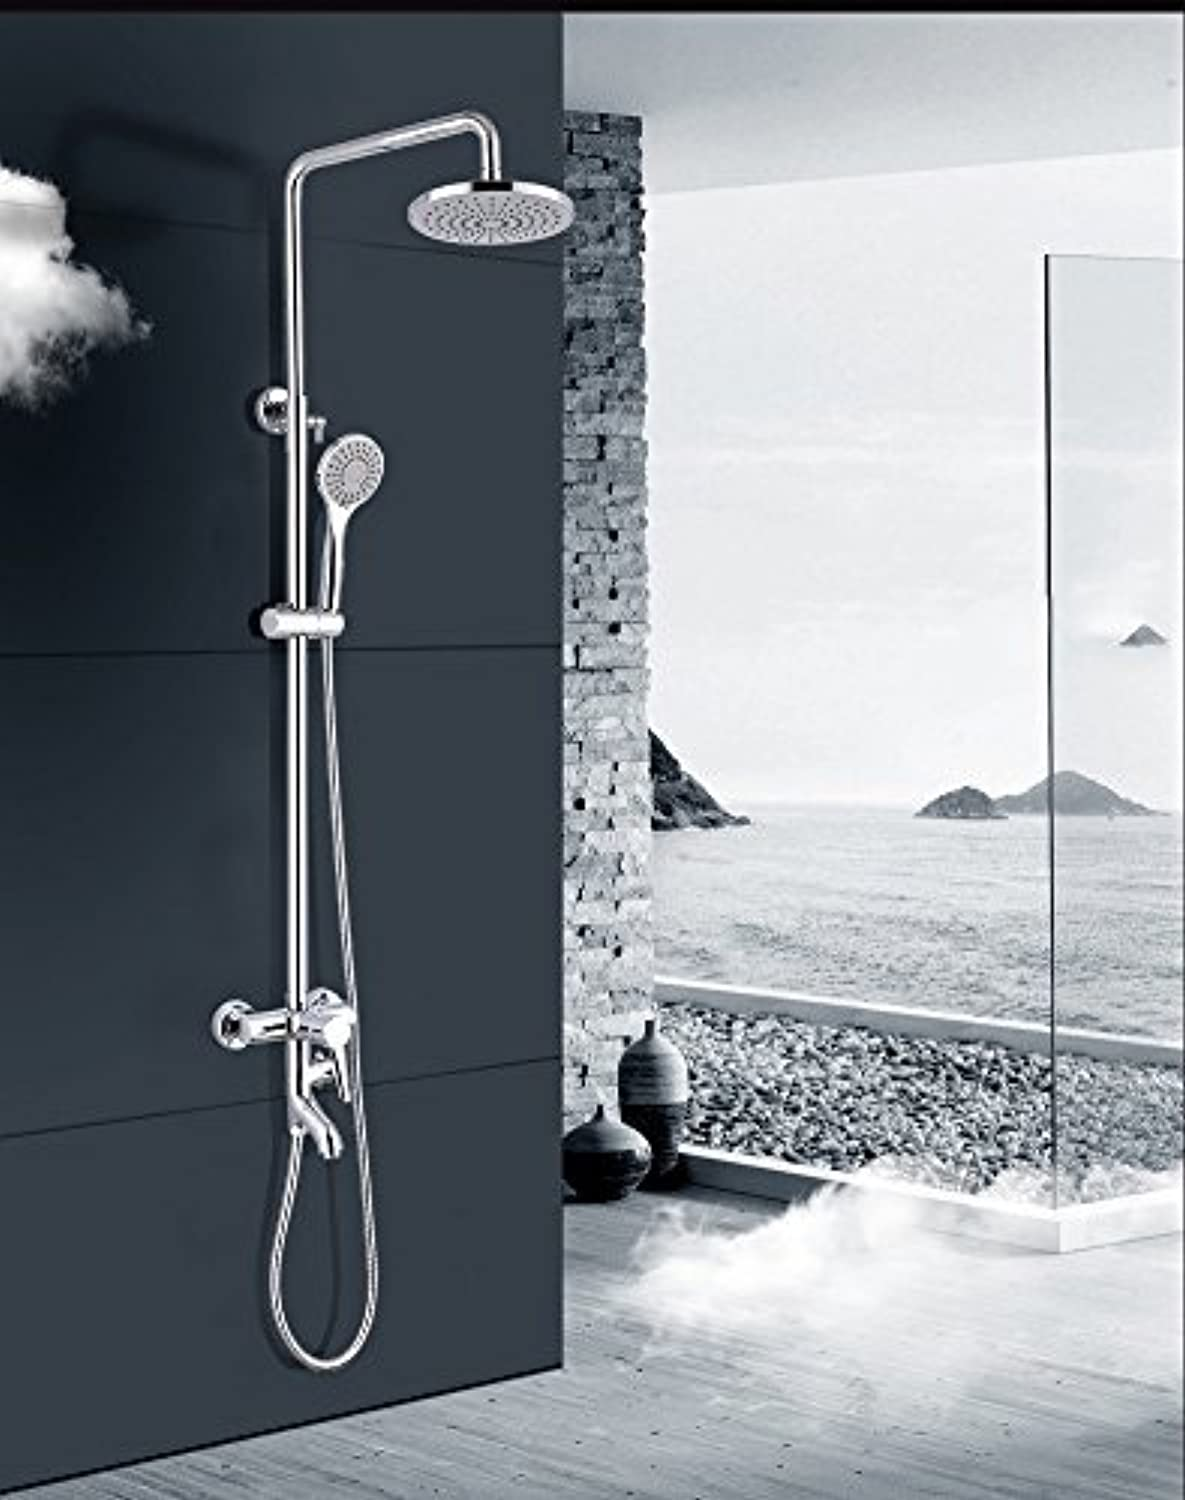 Thermostatic shower faucet shower bathroom shower suit copper stainless steel mixing valve booster hand shower nozzle